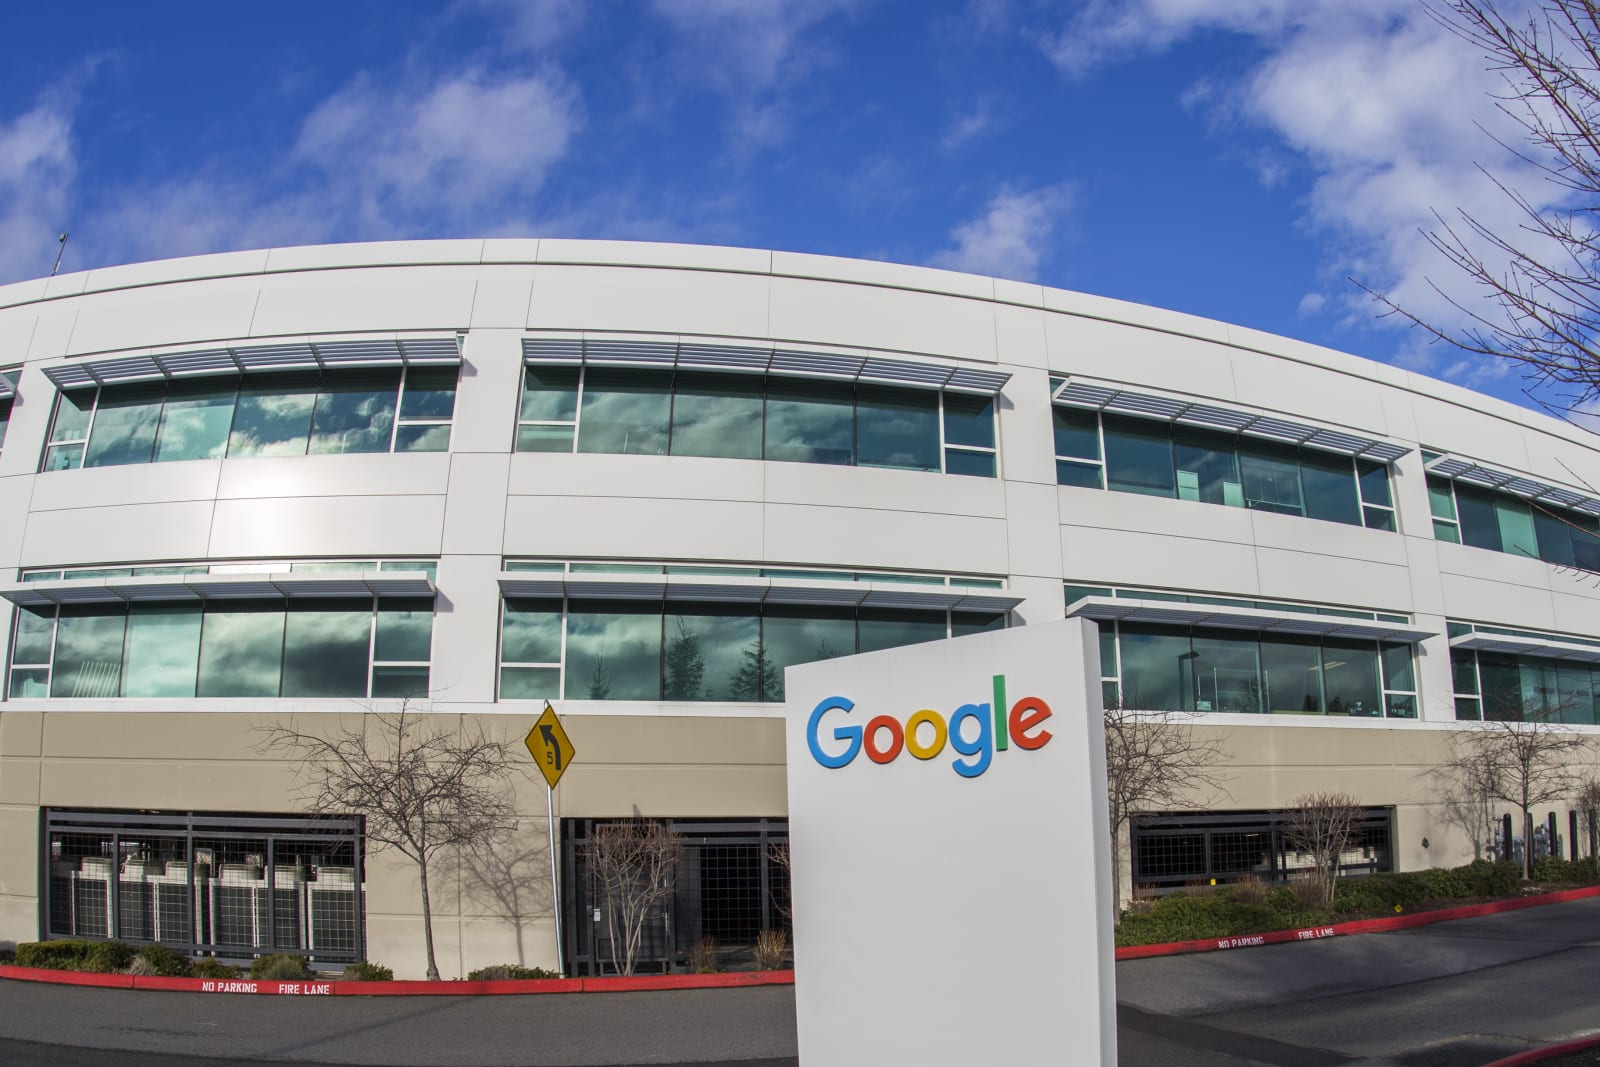 Fisheye view of a Google building